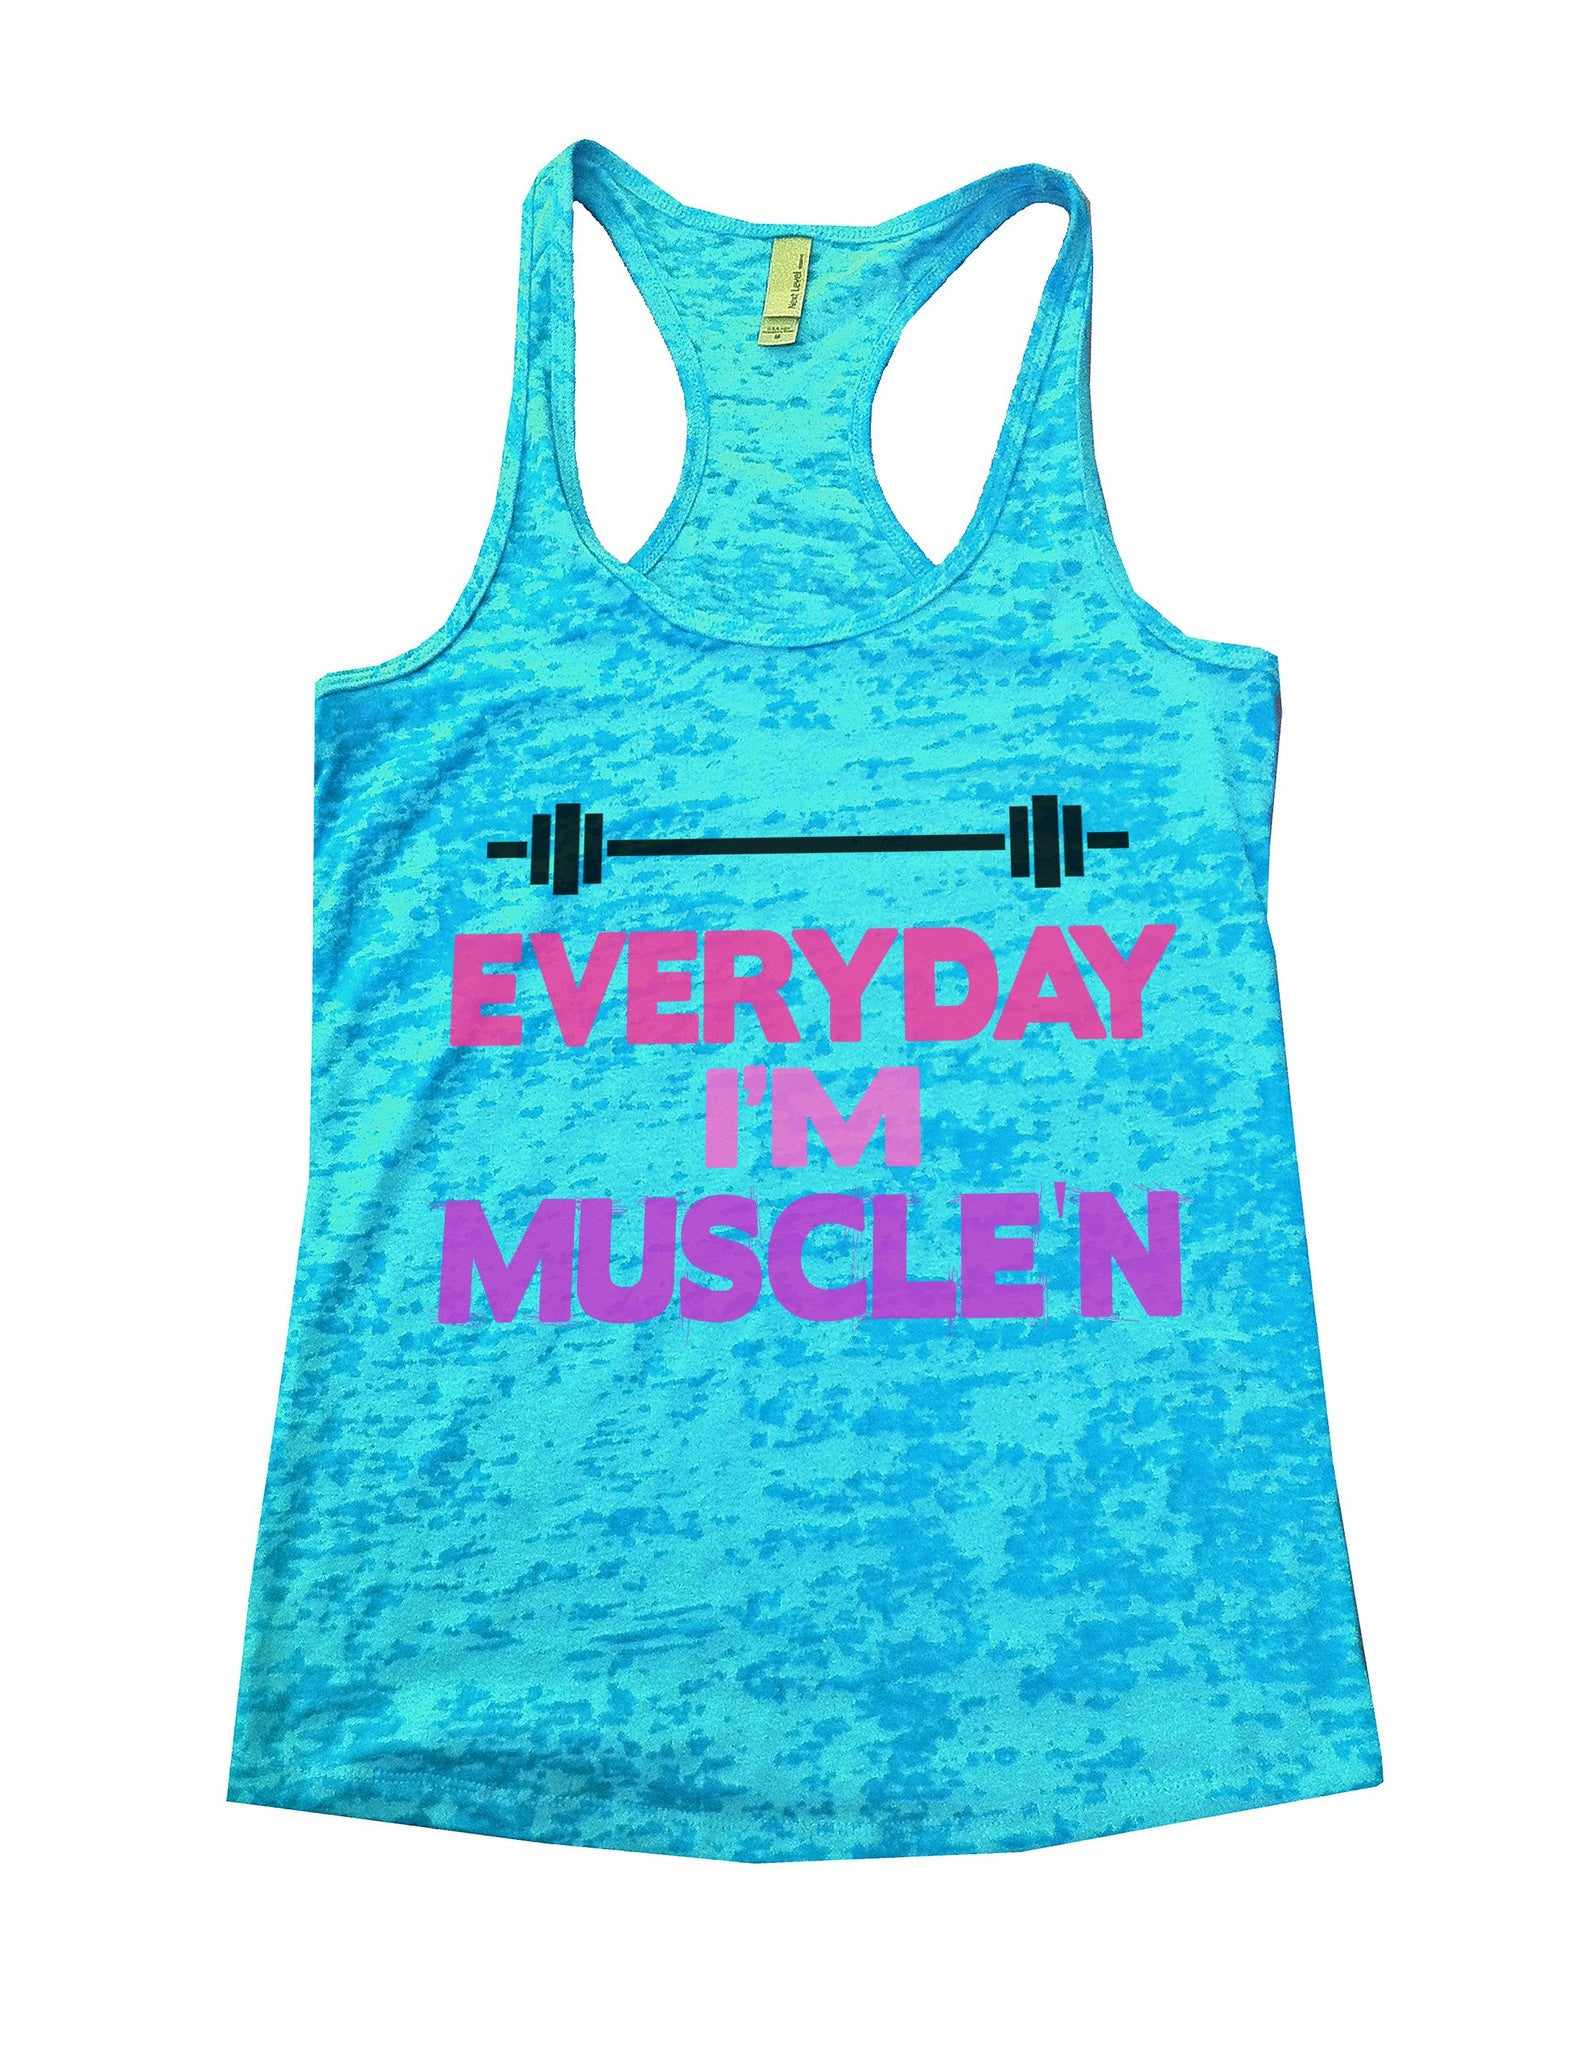 Everyday I'm Muscle'n Burnout Tank Top By BurnoutTankTops.com - 636 - Funny Shirts Tank Tops Burnouts and Triblends  - 3